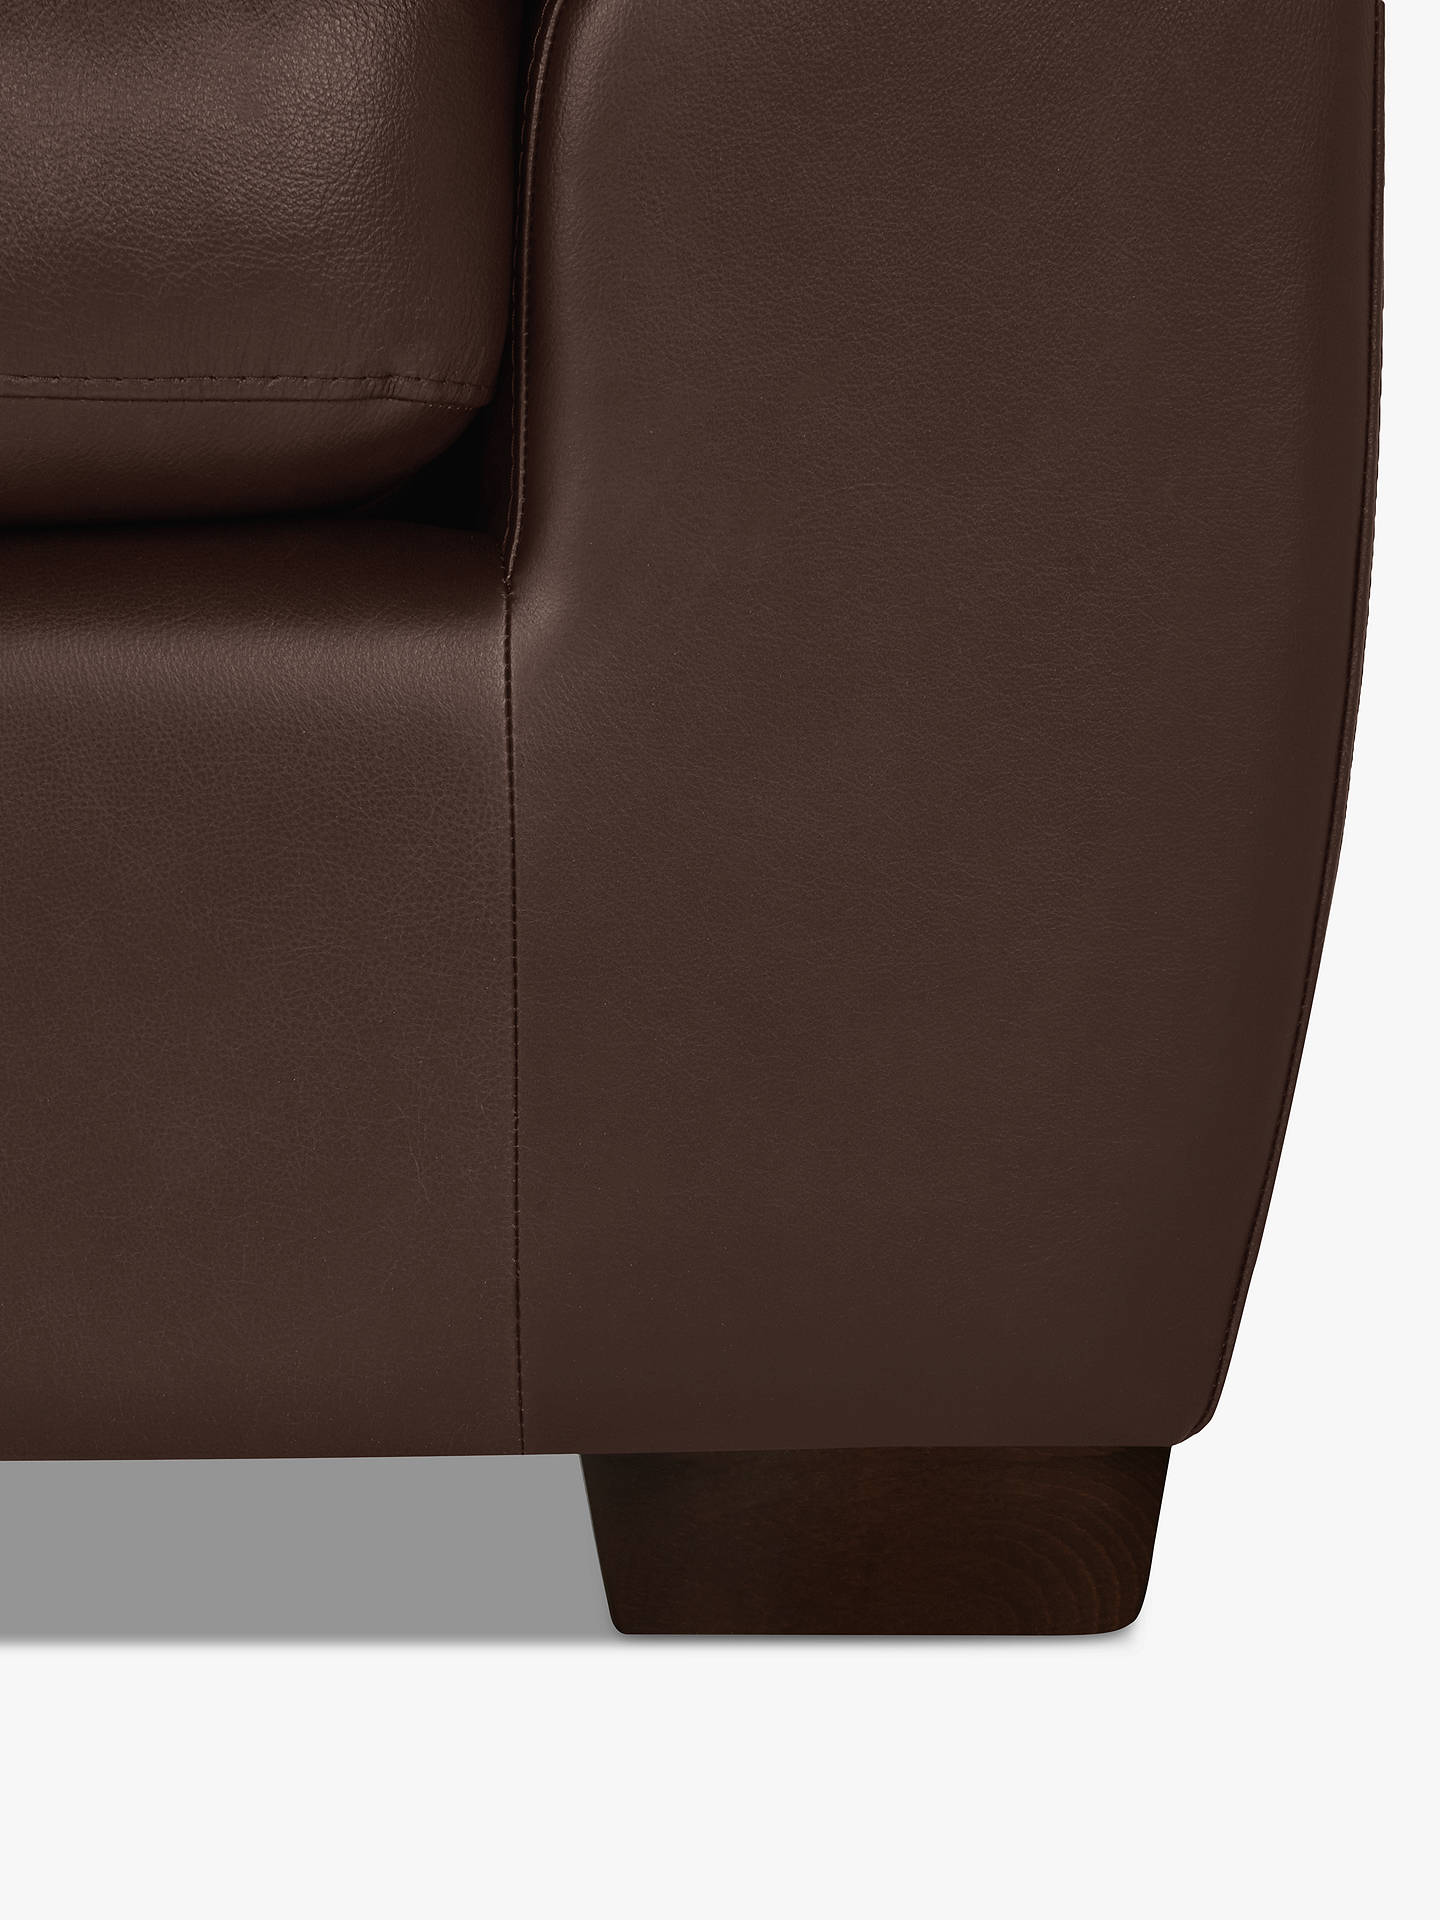 Buy John Lewis & Partners Camden Leather Corner Sofa, Dark Leg, Nature Brown Online at johnlewis.com